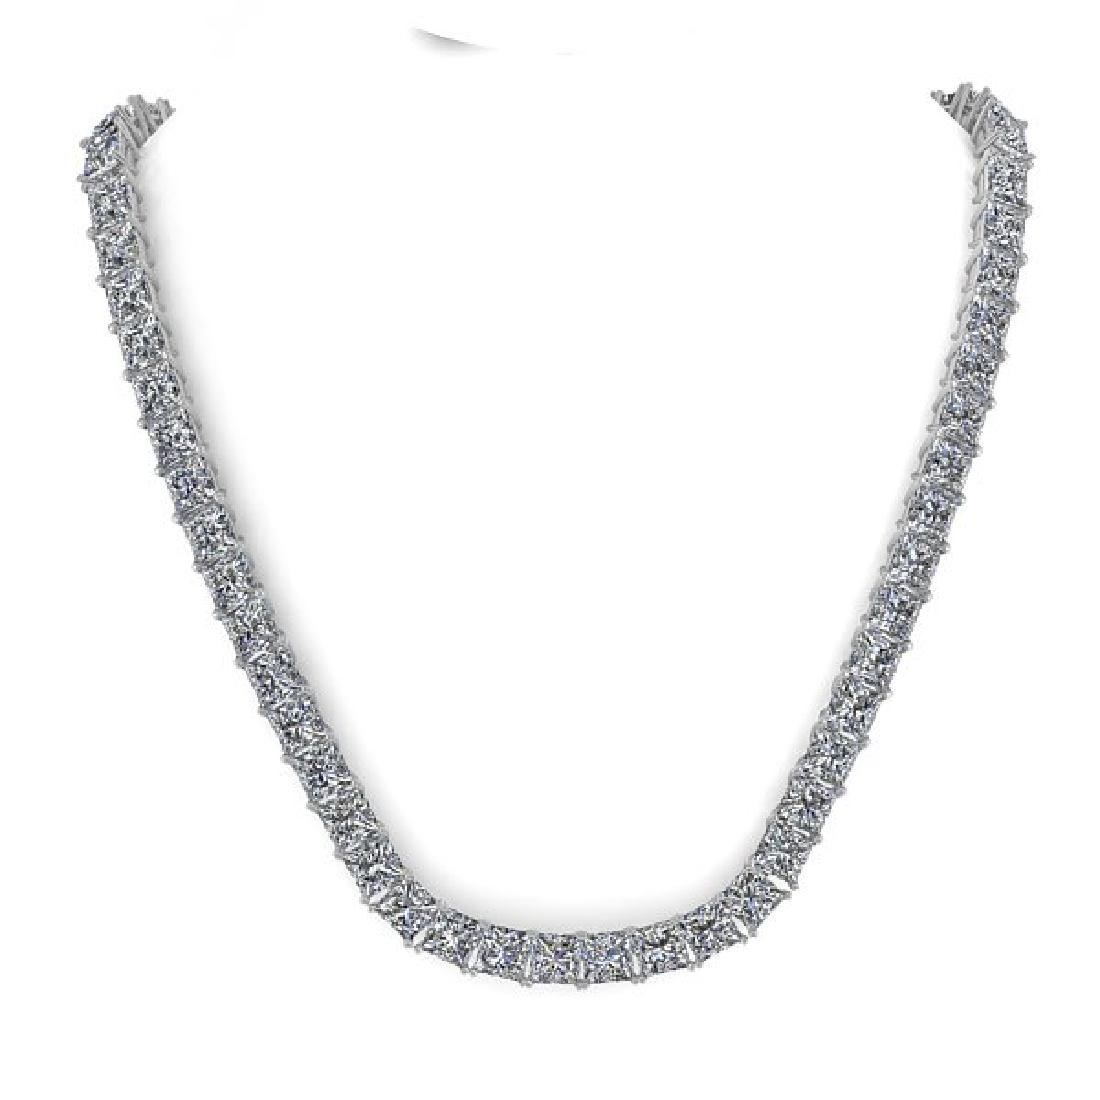 40 CTW Princess Certified SI Diamond Necklace 18K Rose - 3